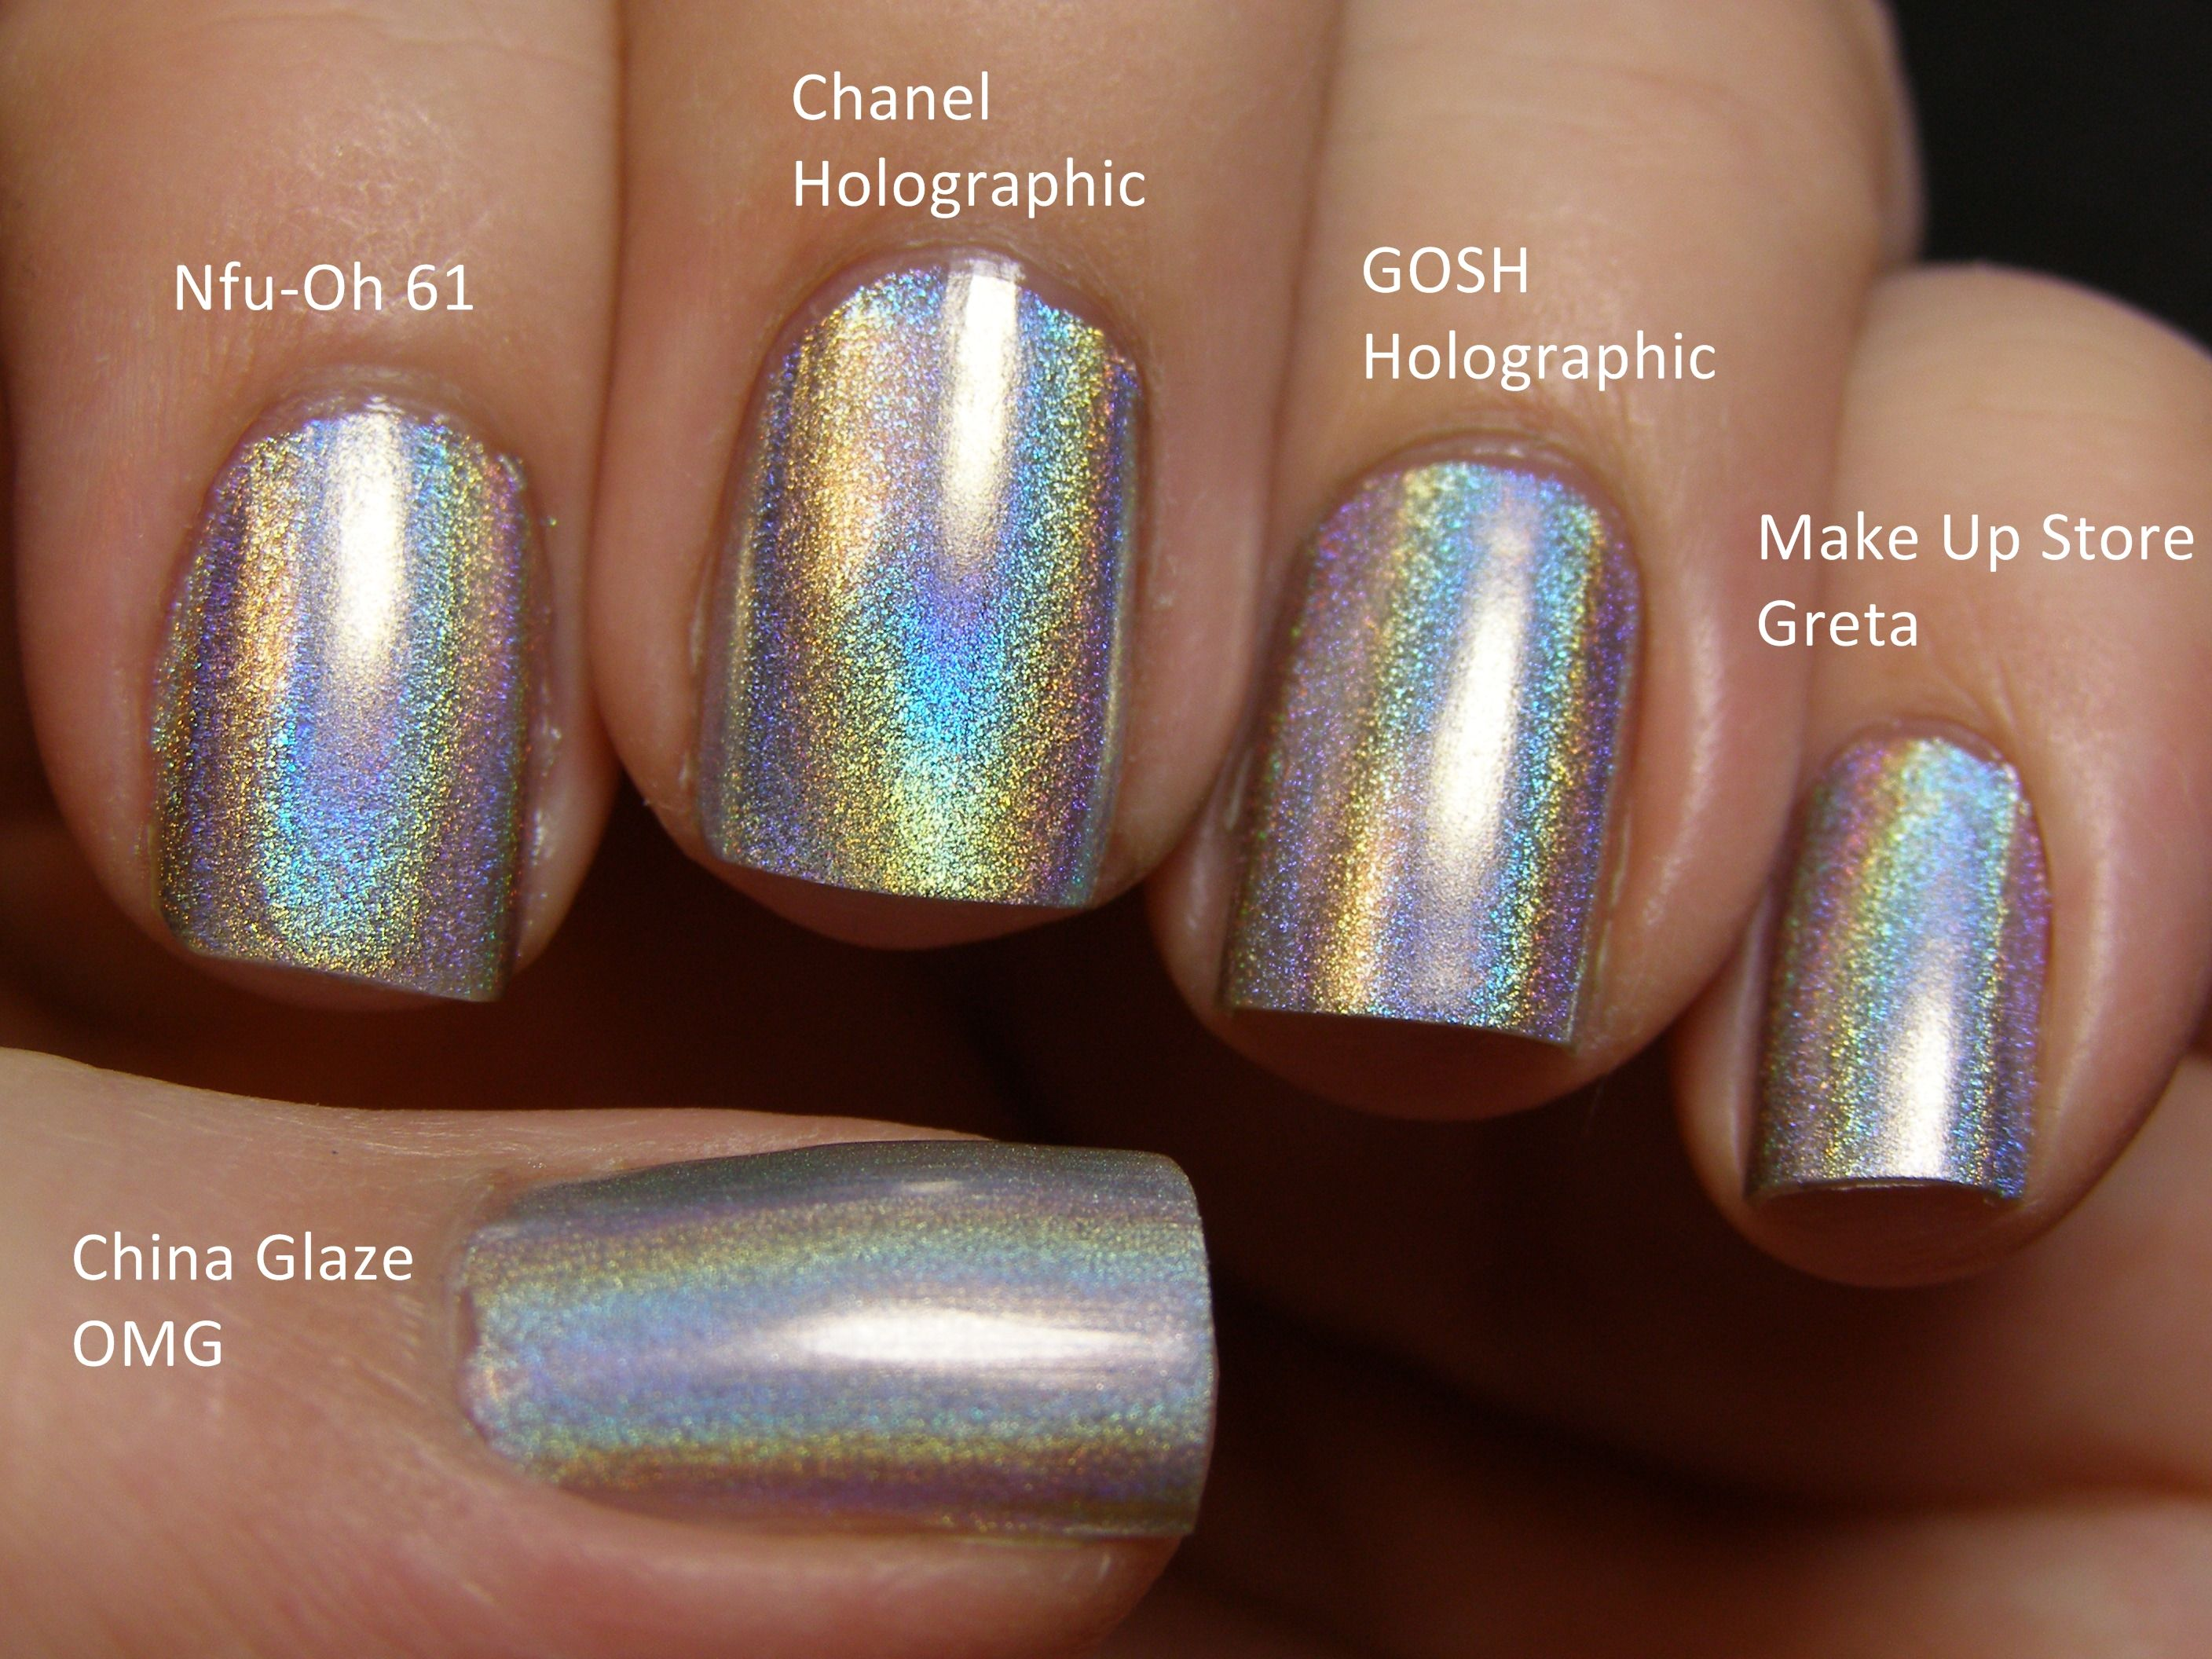 Comparing Holographic nail polishes. I have been looking for a good ...